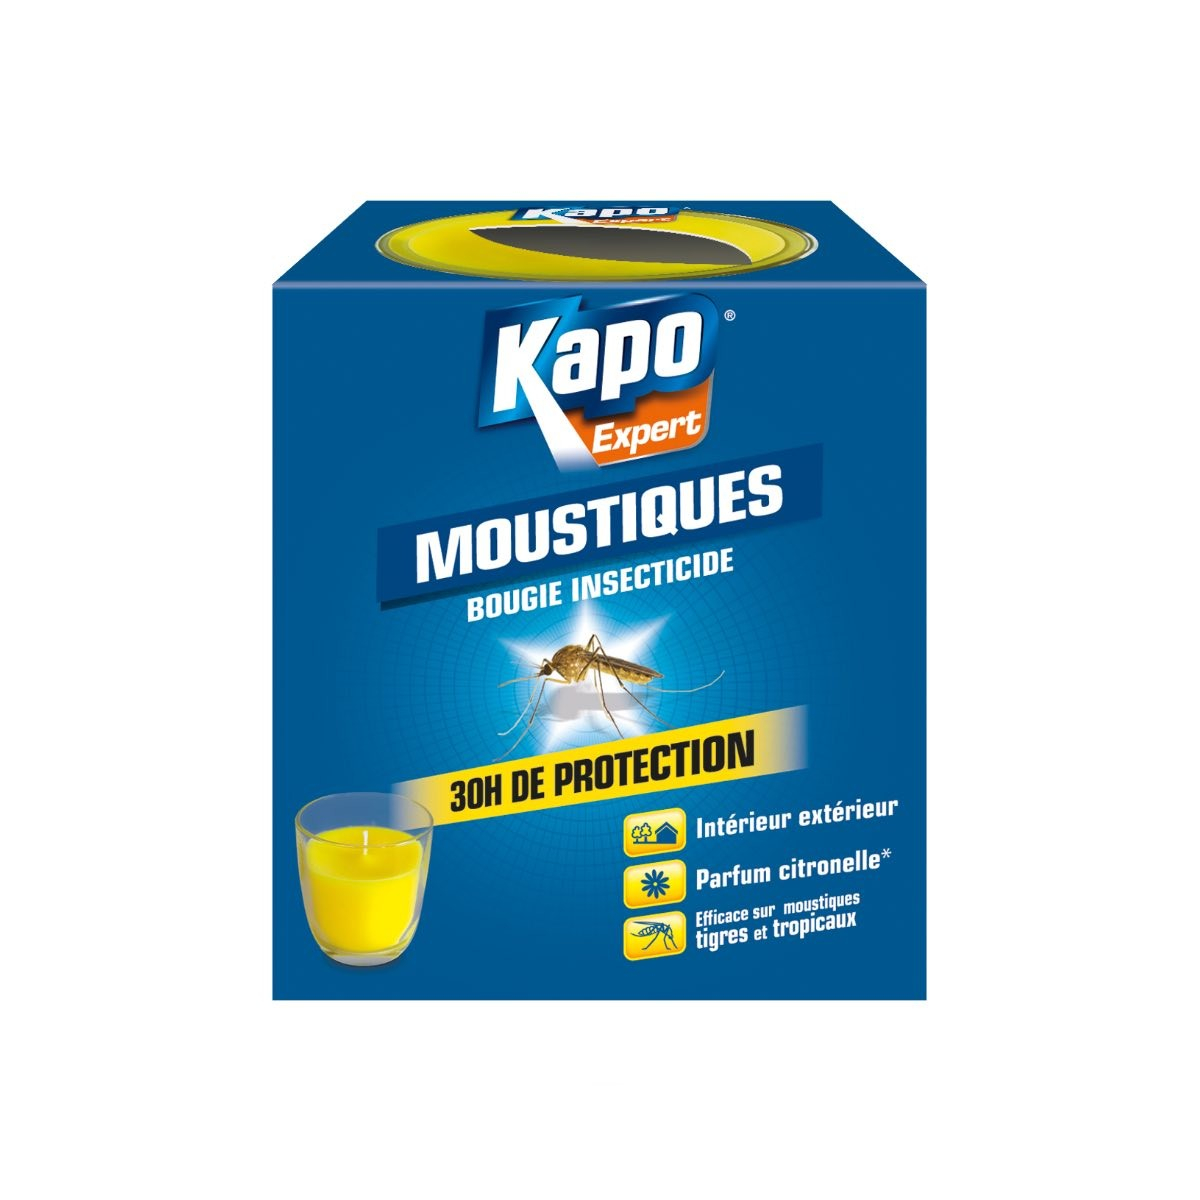 Bougie insecticide anti-moustiques - Insecticides Kapo Expert